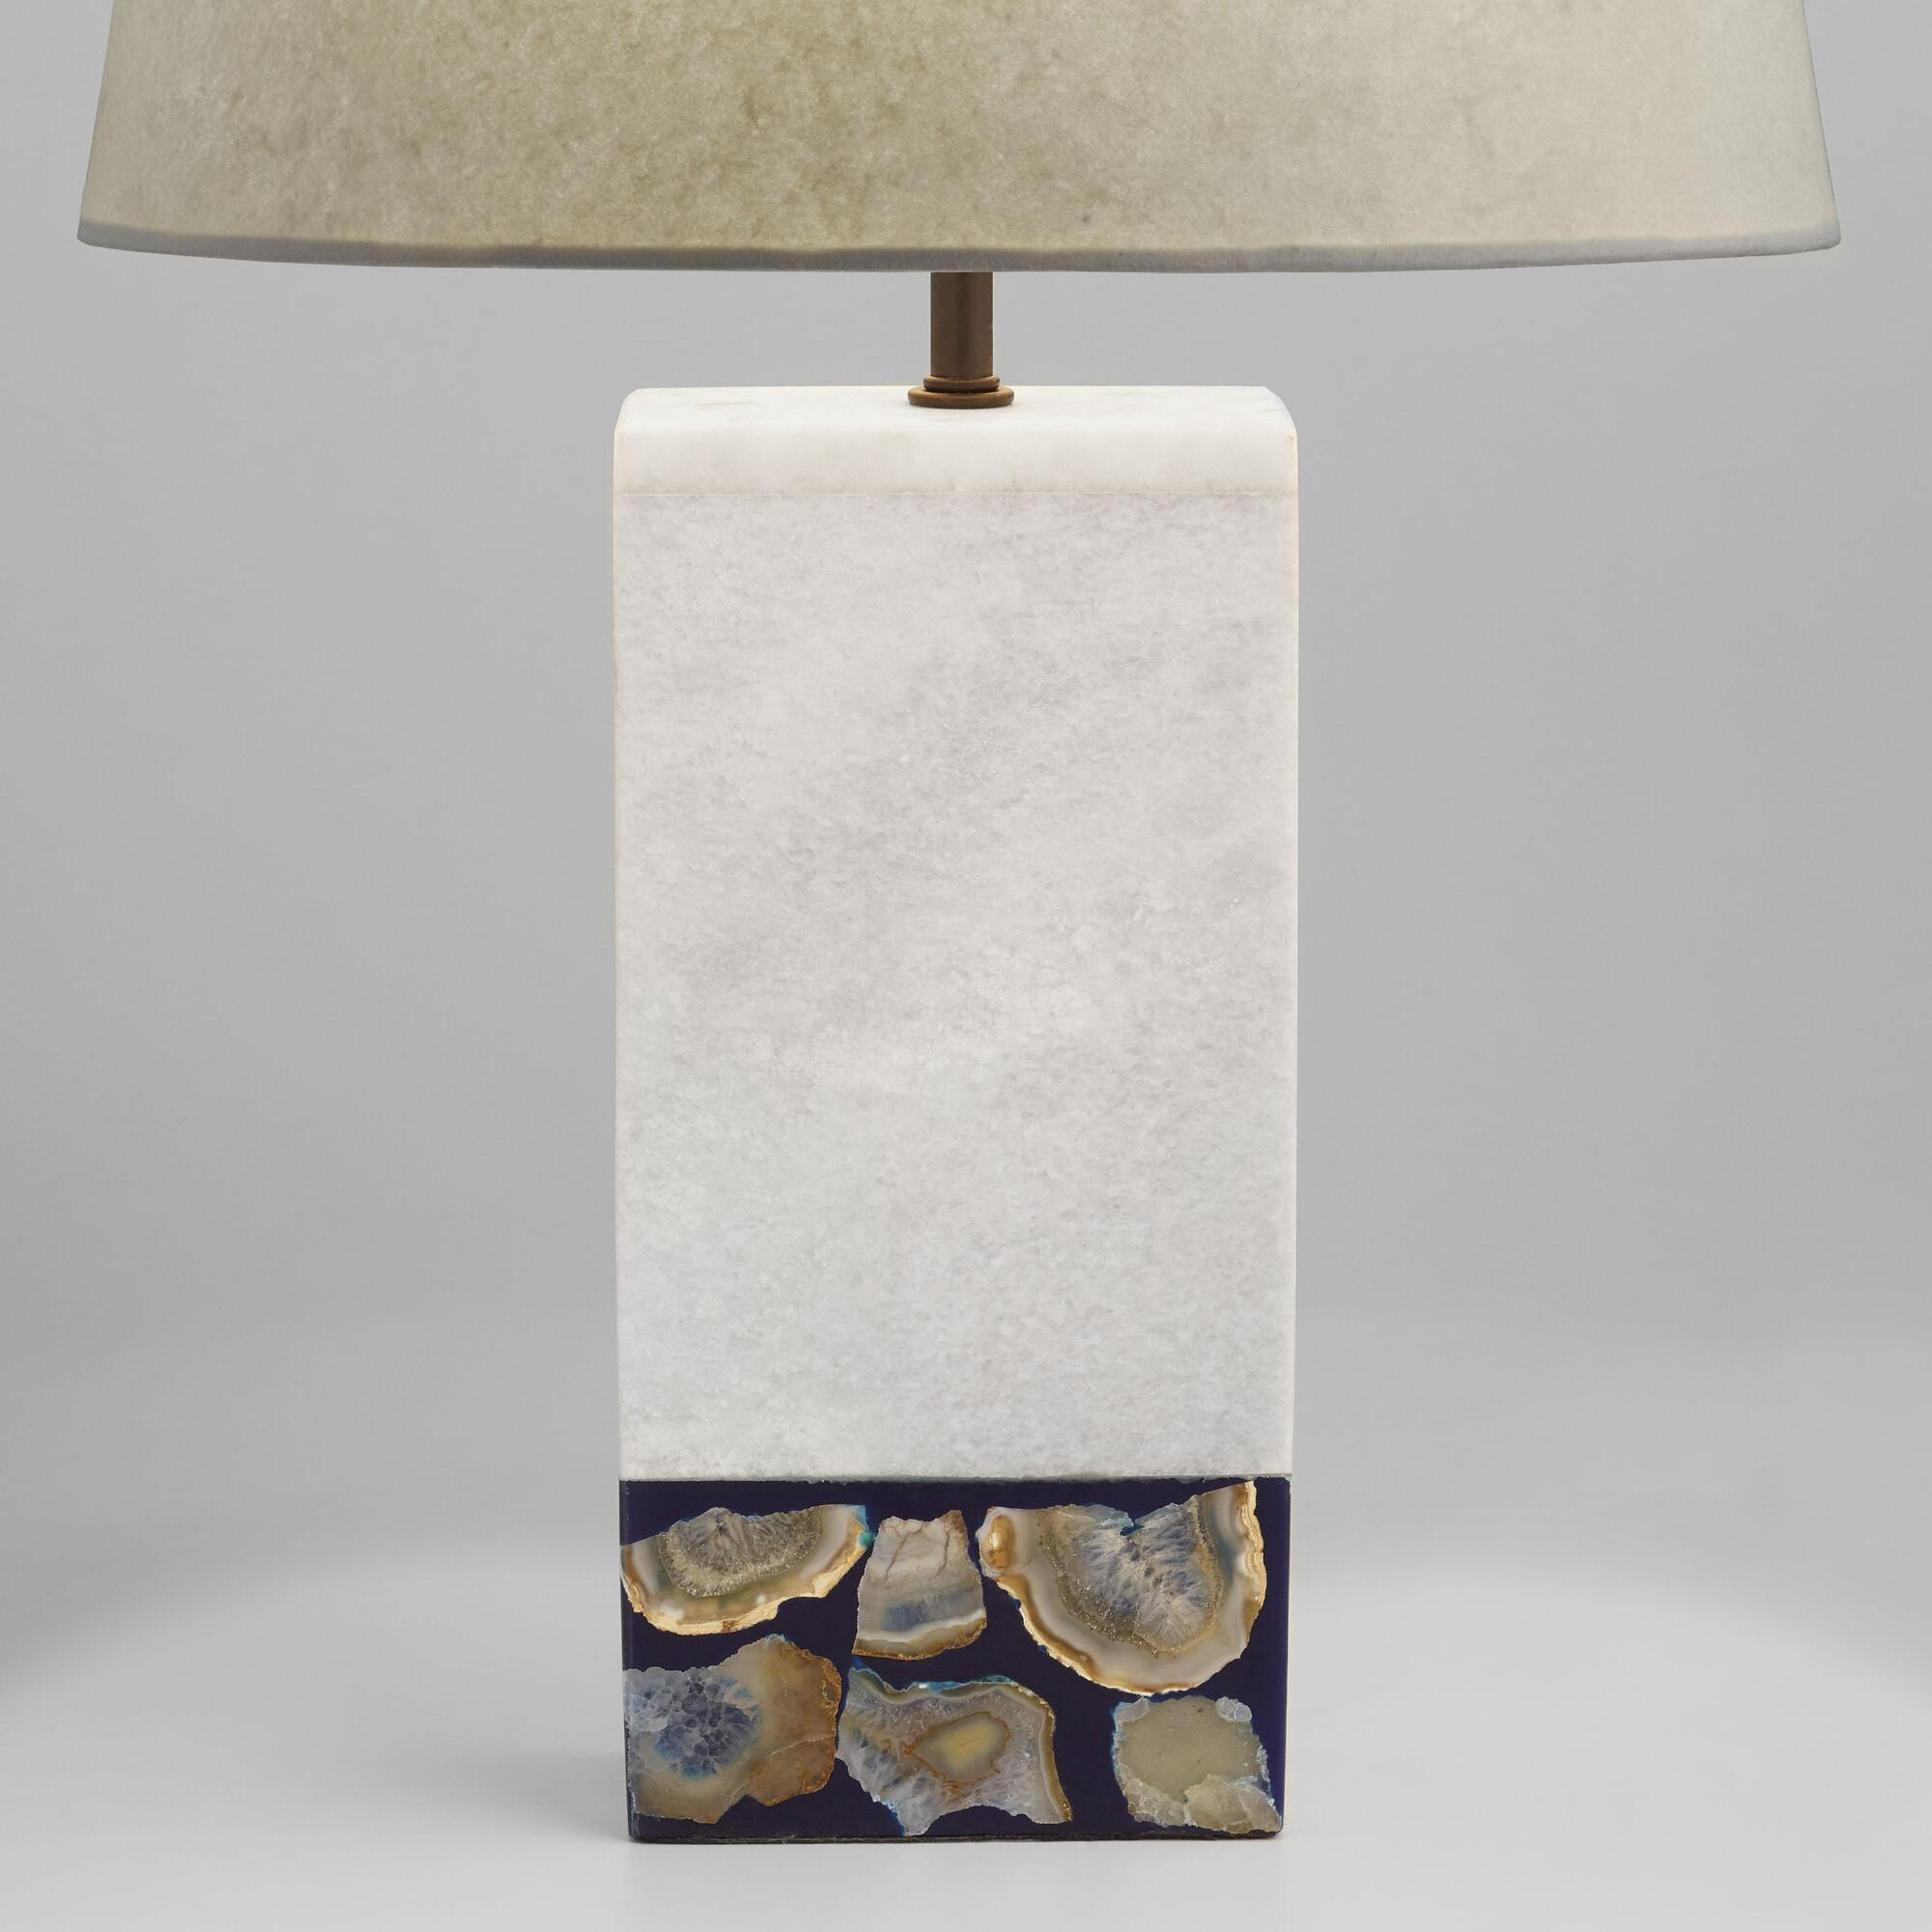 Wood teardrop table lamp base world market white marble and agate table lamp base geotapseo Image collections